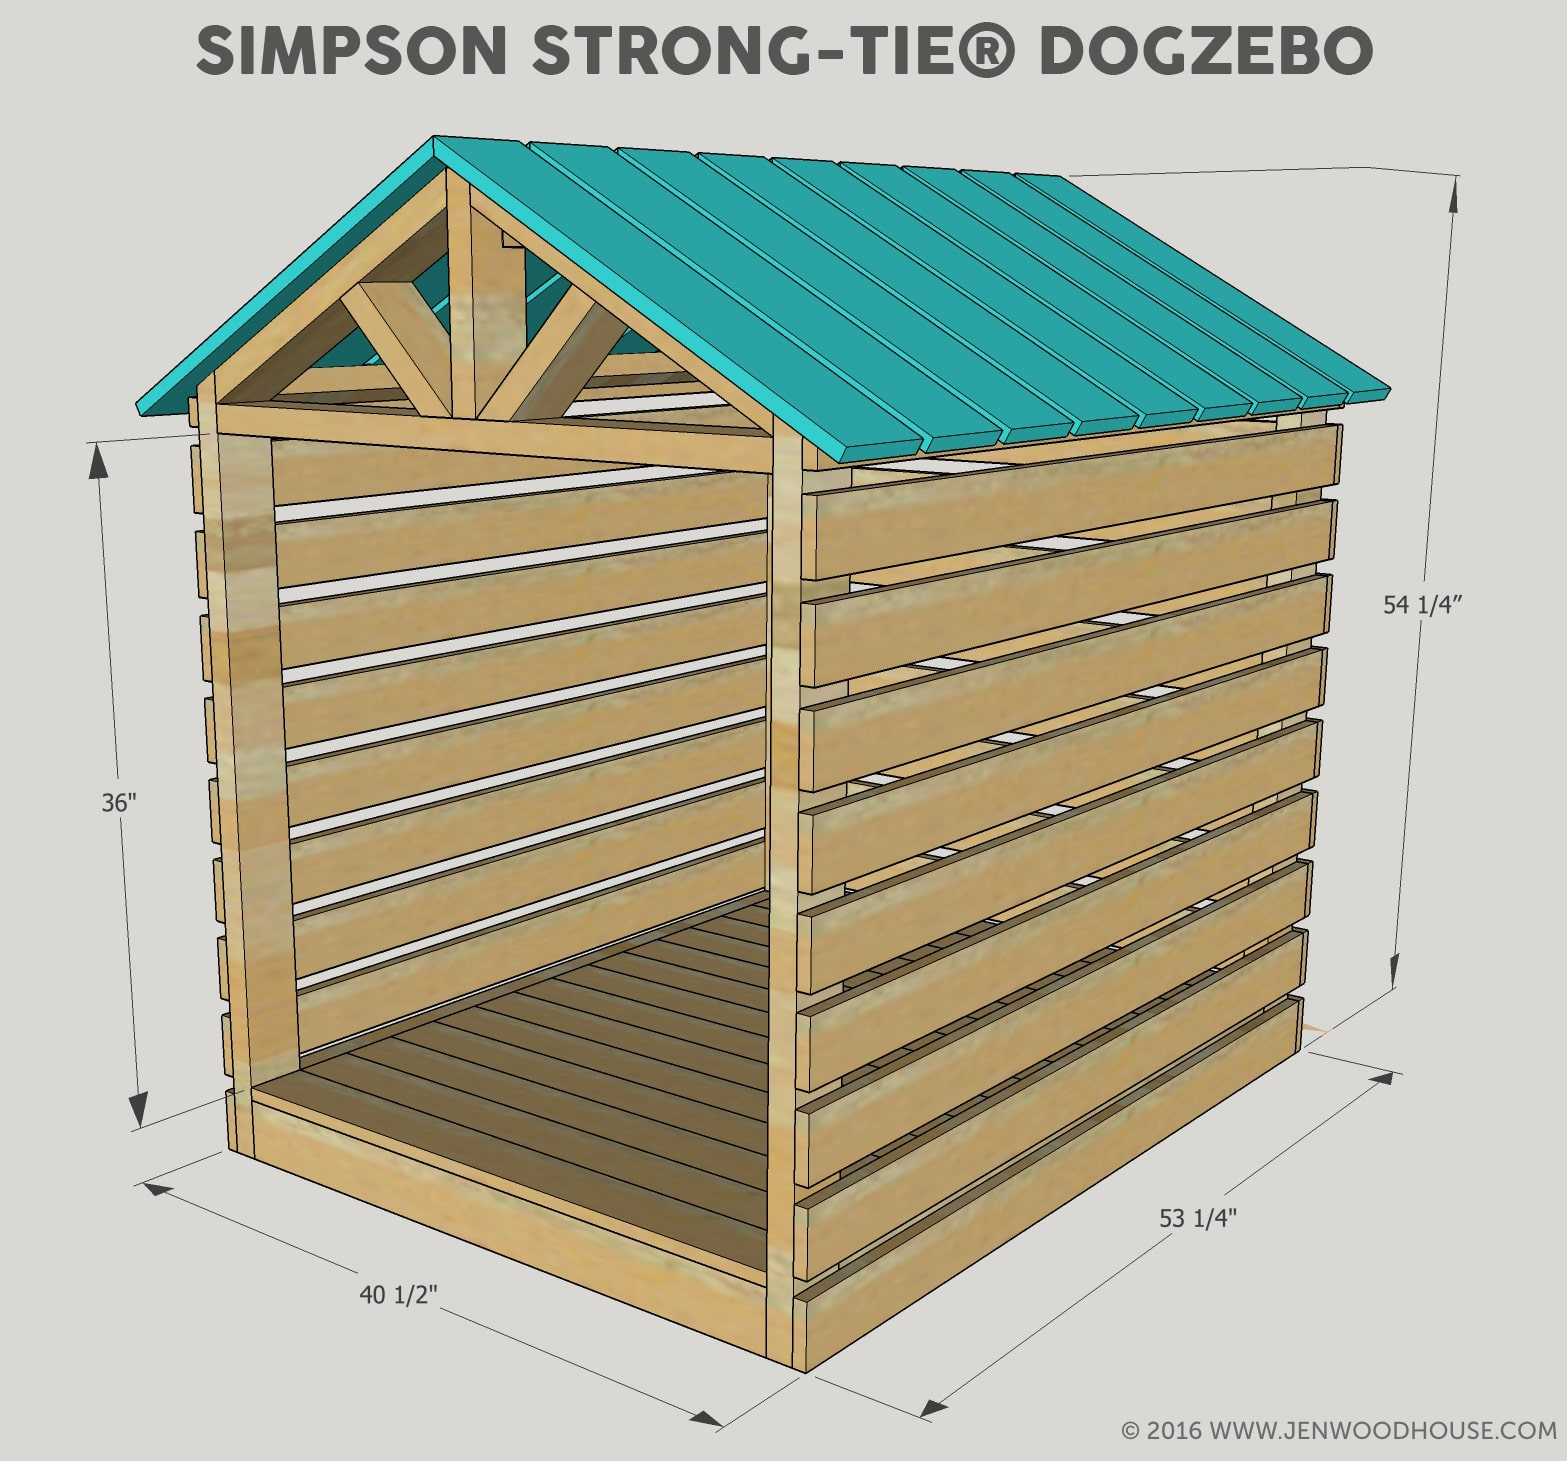 Diy Dog House Gazebo Building Plans The House Of Wood